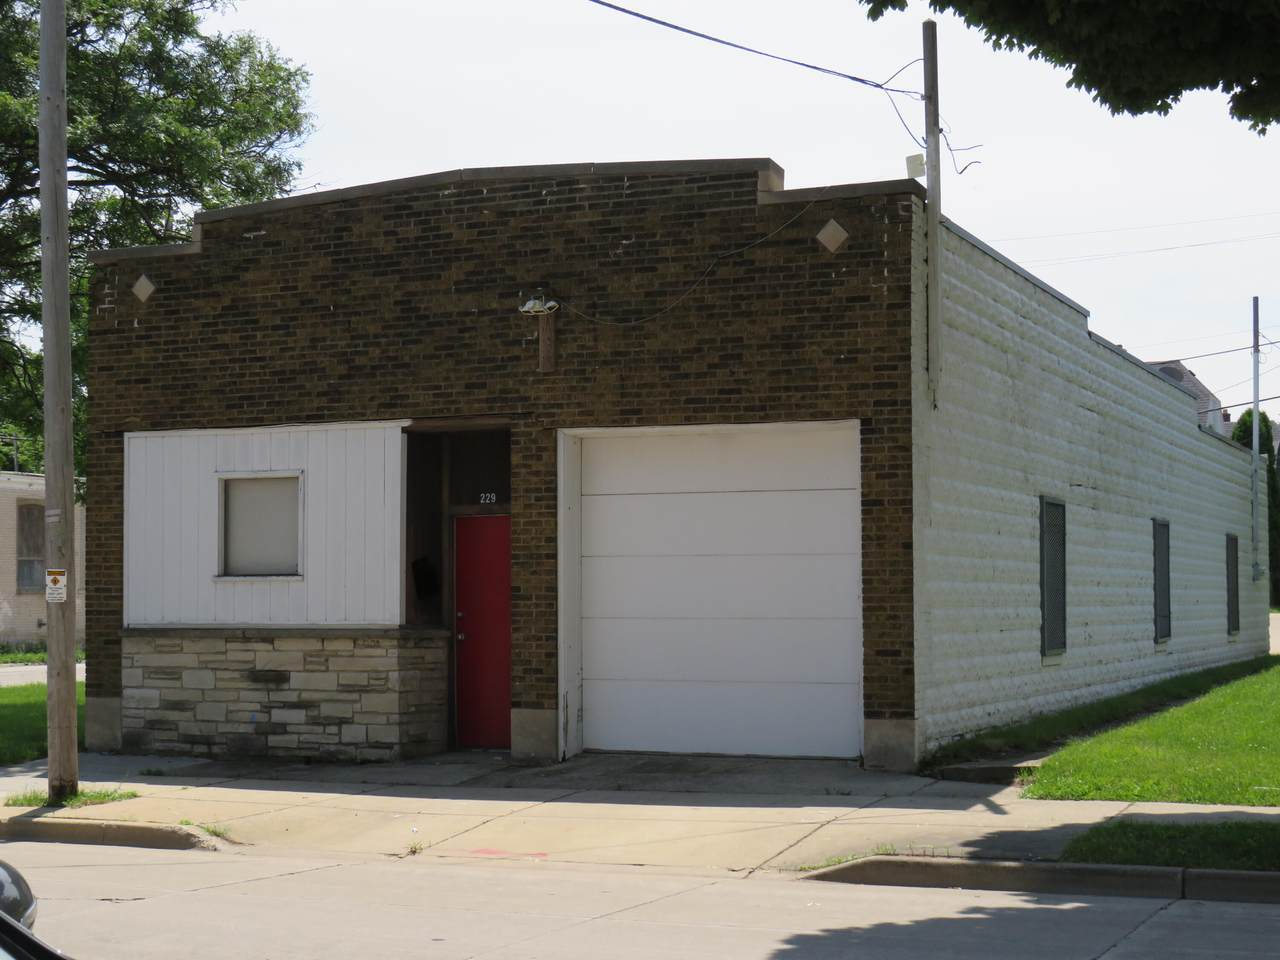 229 Keefe Ave - Photo 1